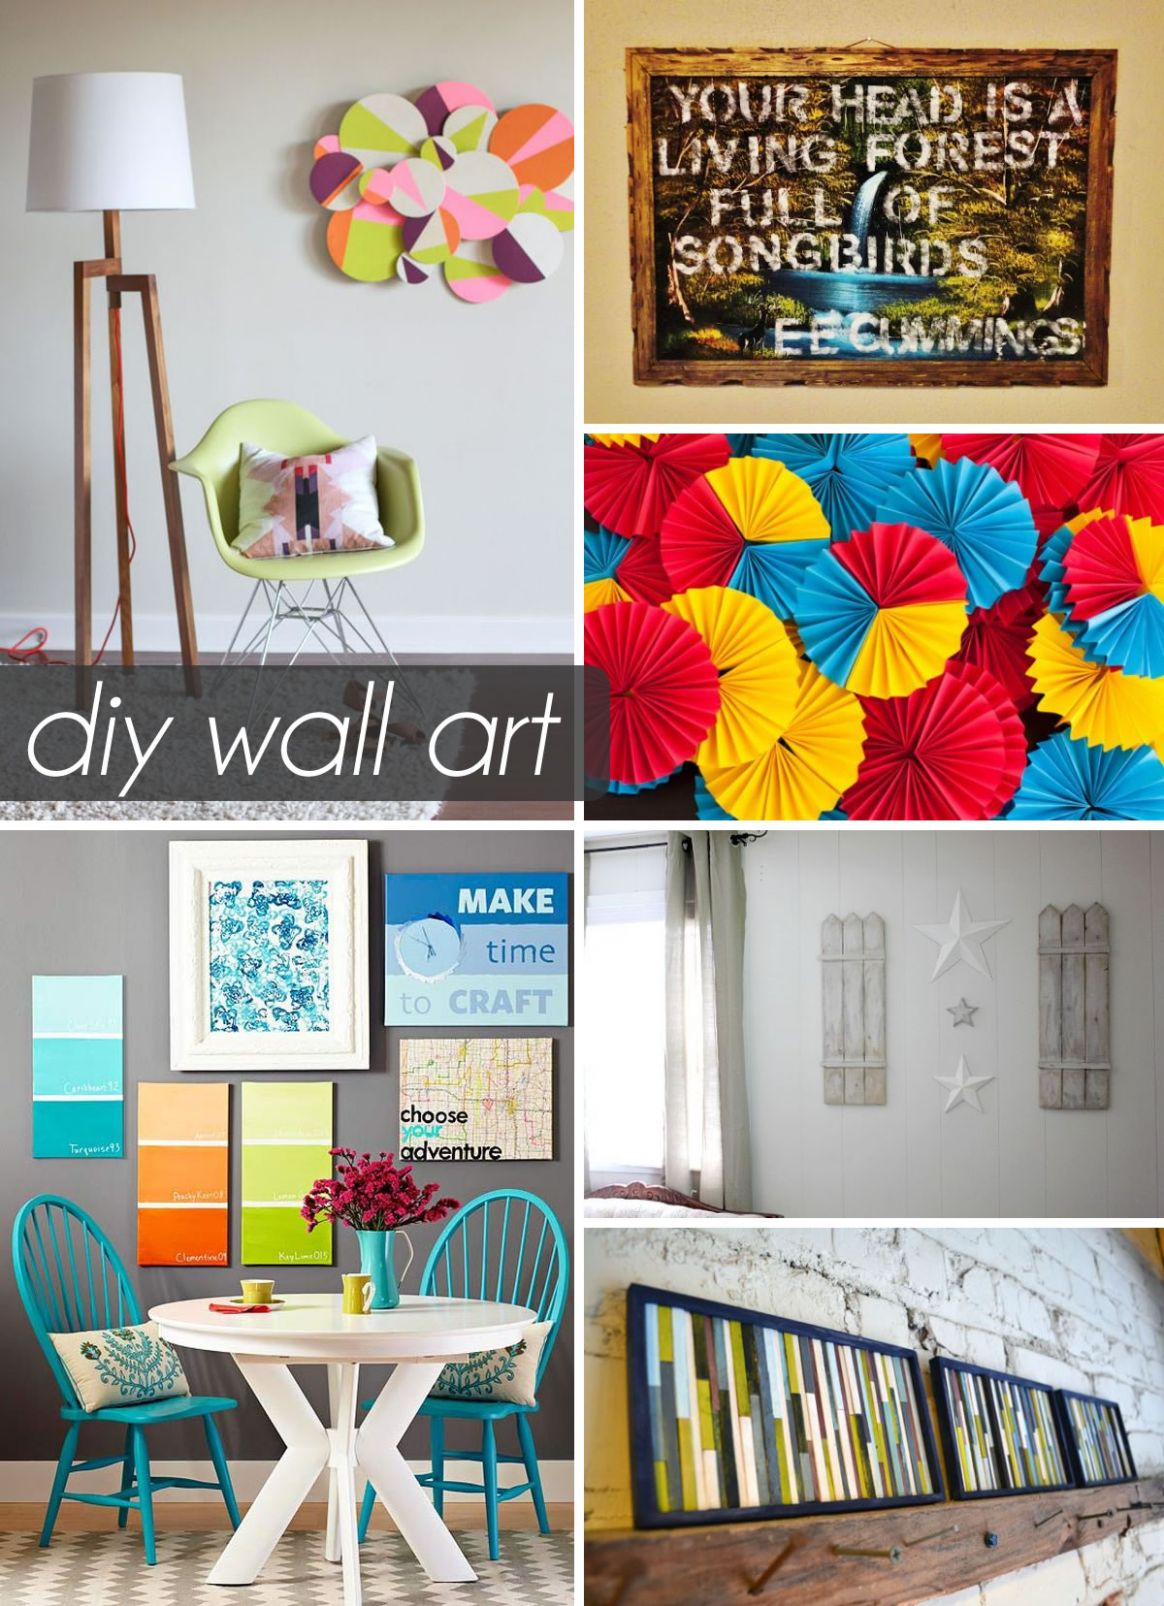 11 Beautiful DIY Wall Art Ideas For Your Home - diy home decor wall